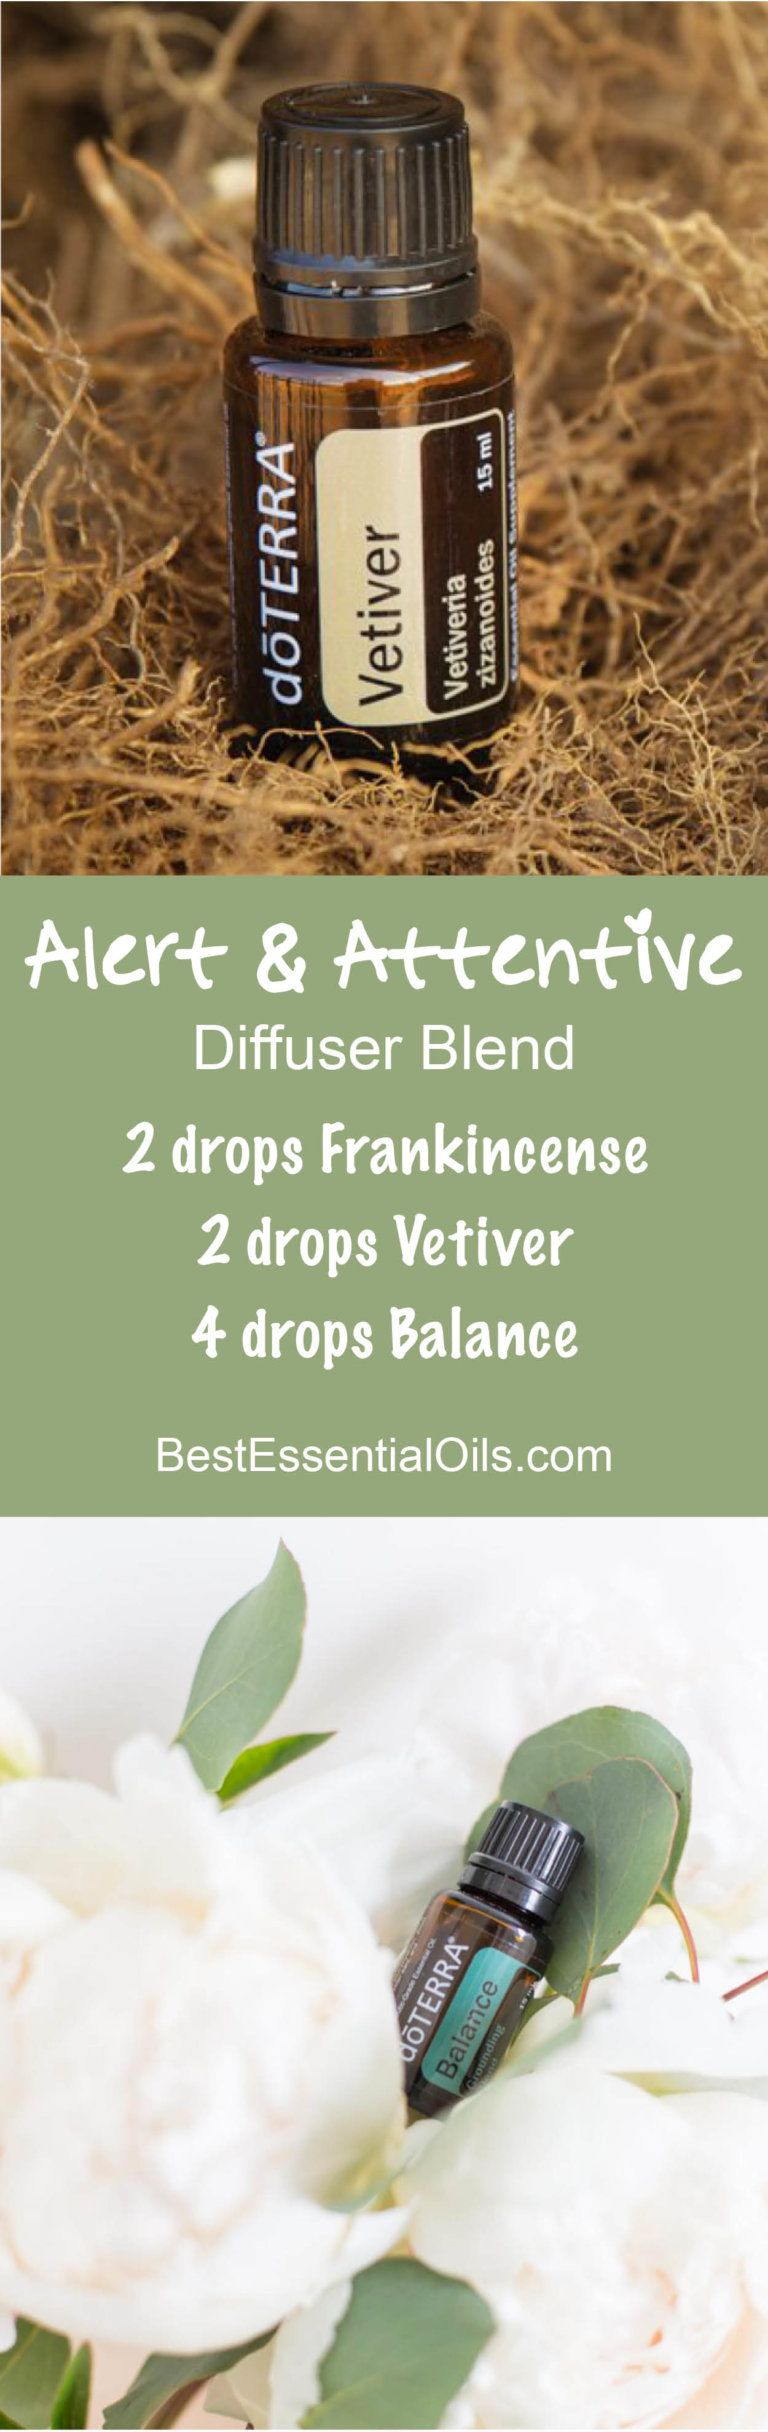 Doterra Oils For Focus Diffuser Blends To Help With